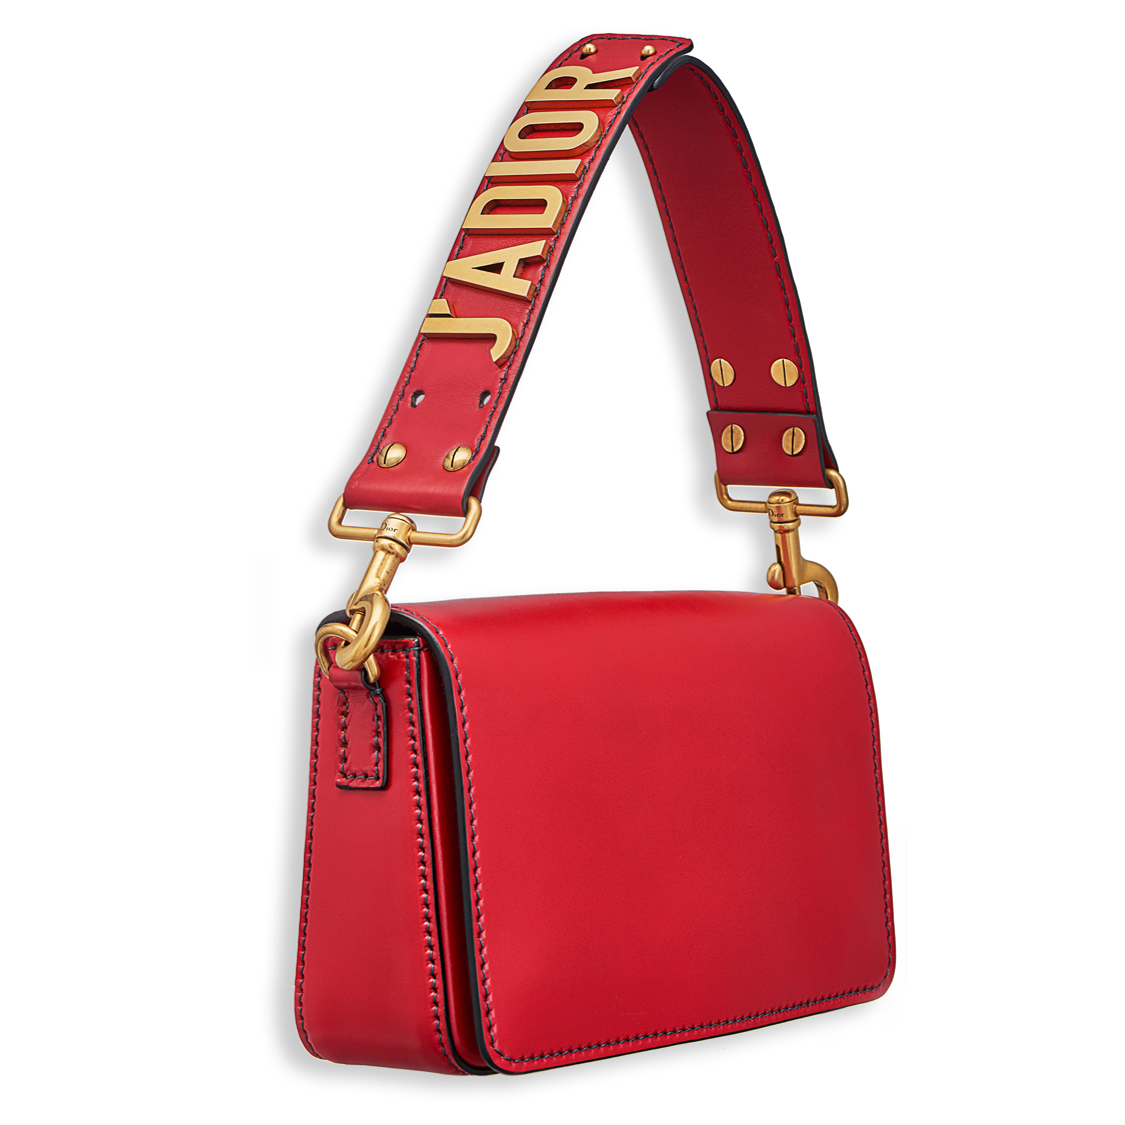 Dior J'adior bag shoulder strap